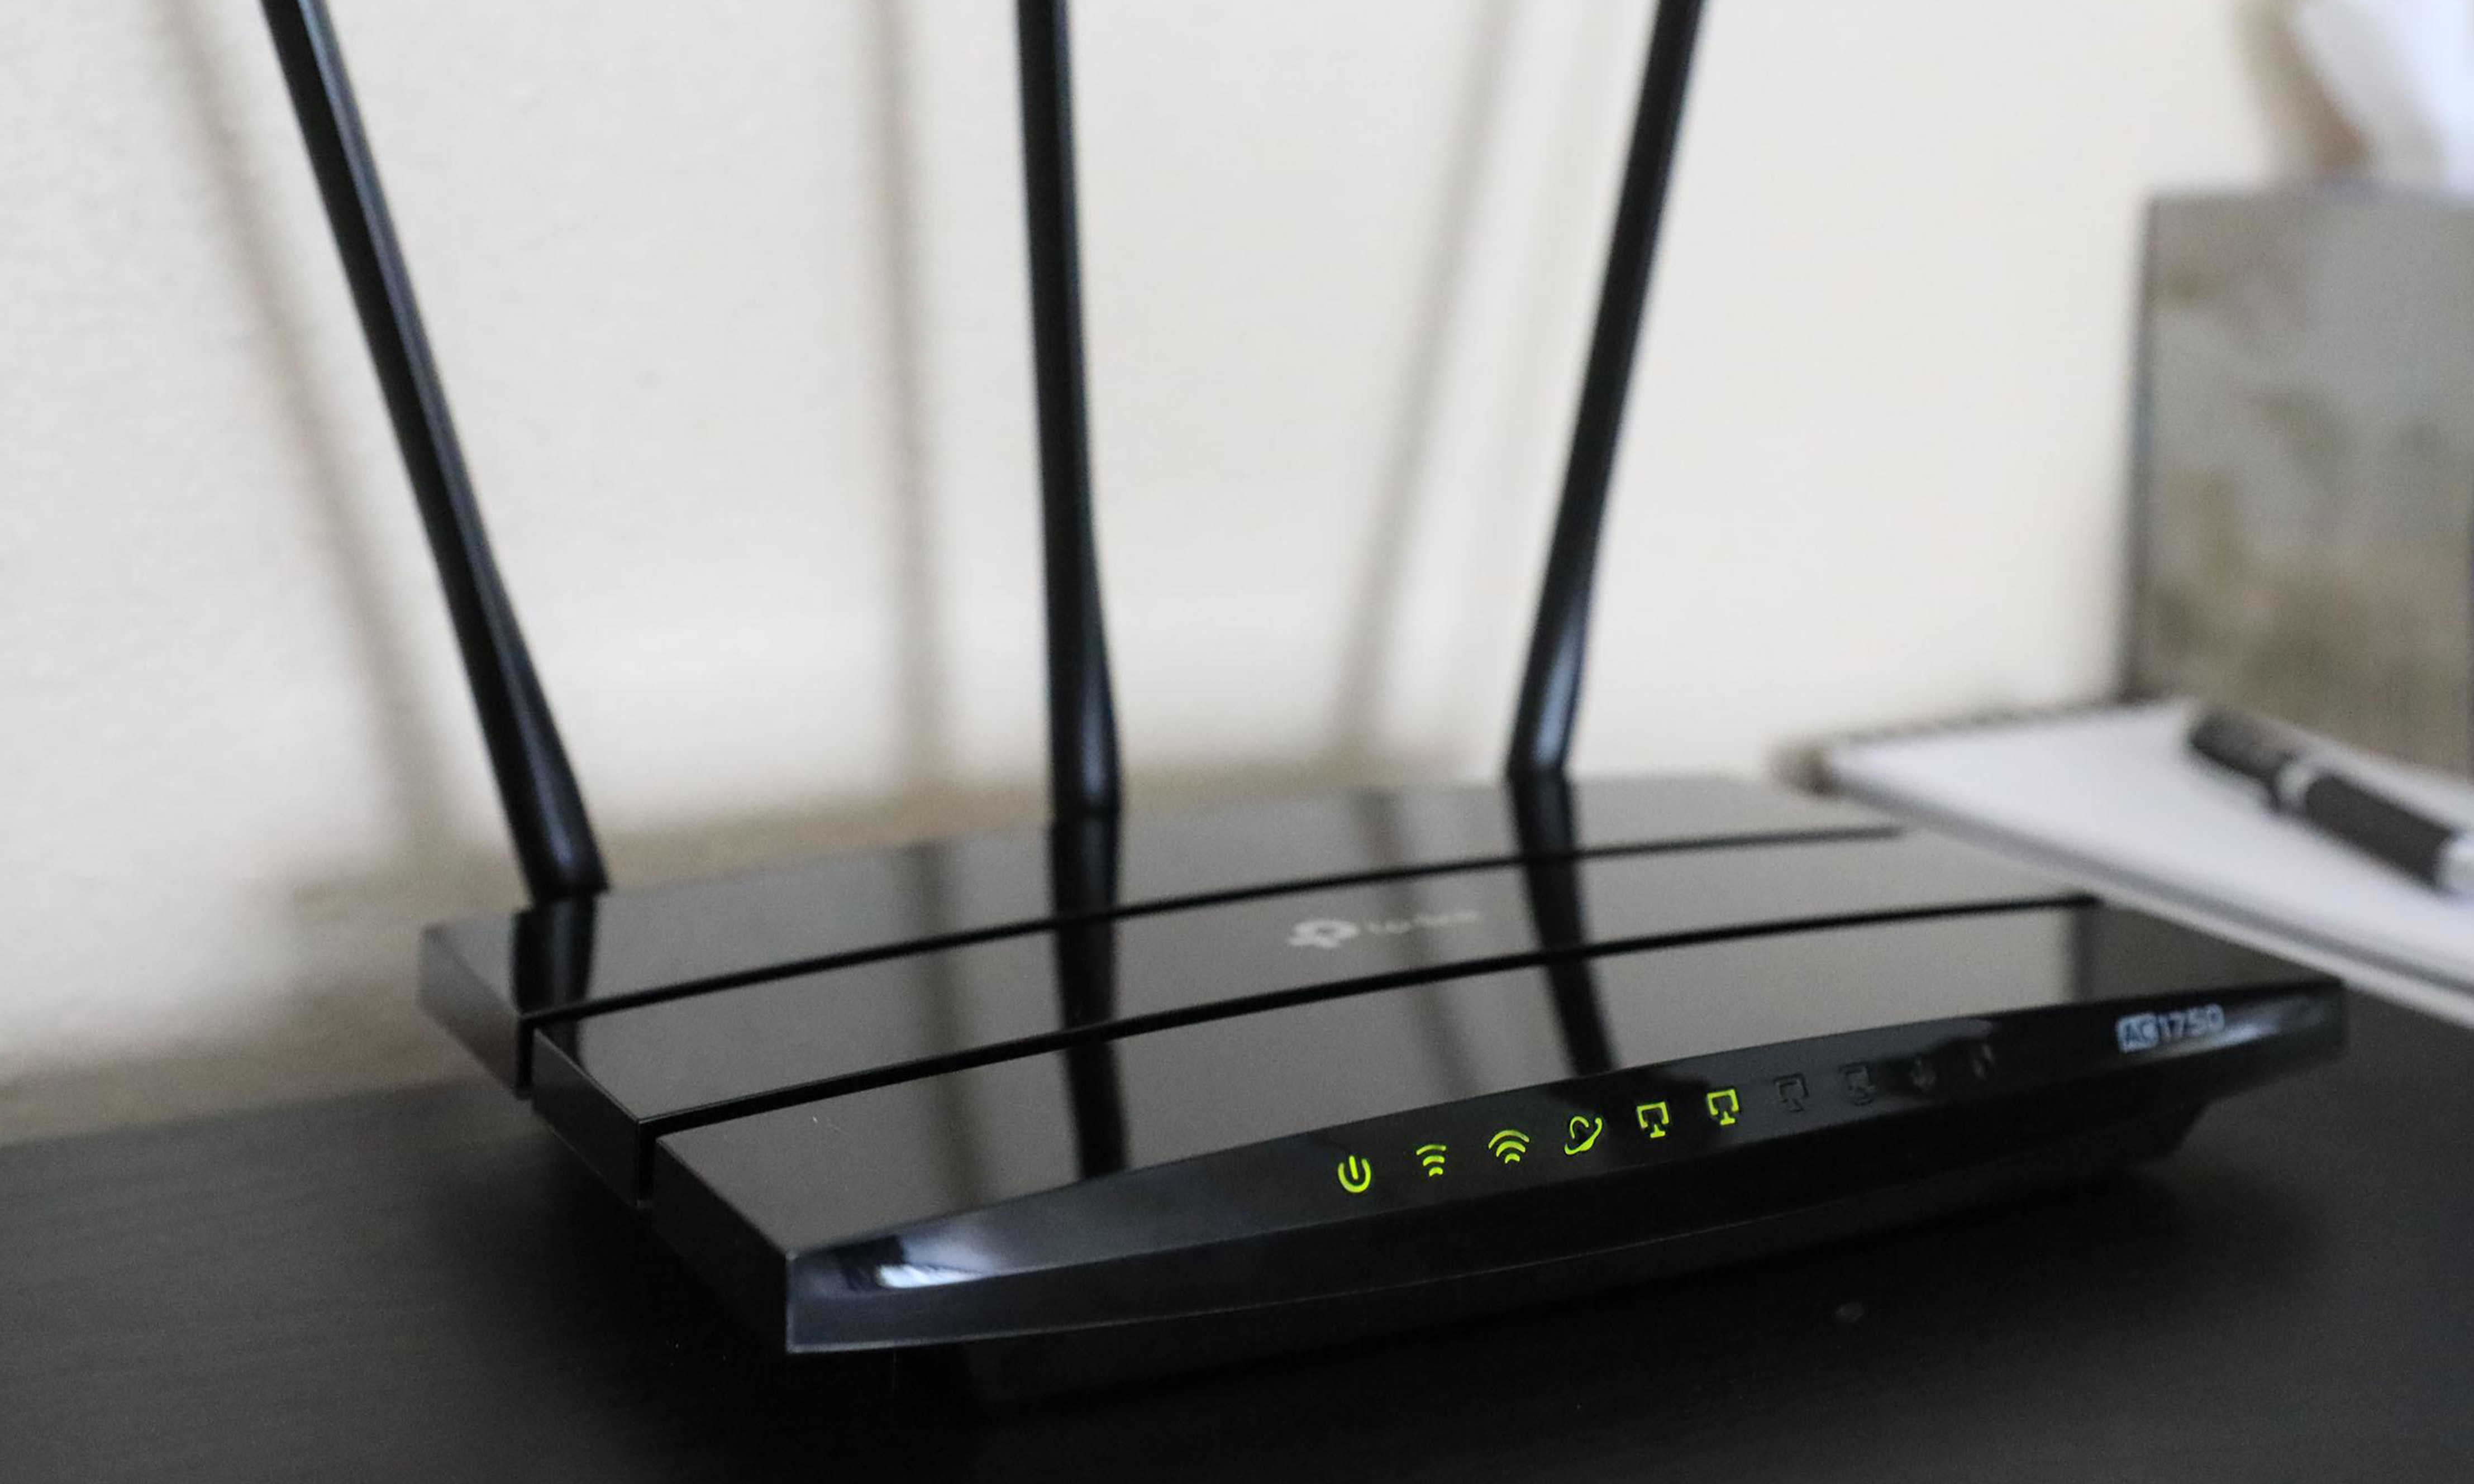 The TP-Link Archer C7 Router Review – The Double Check